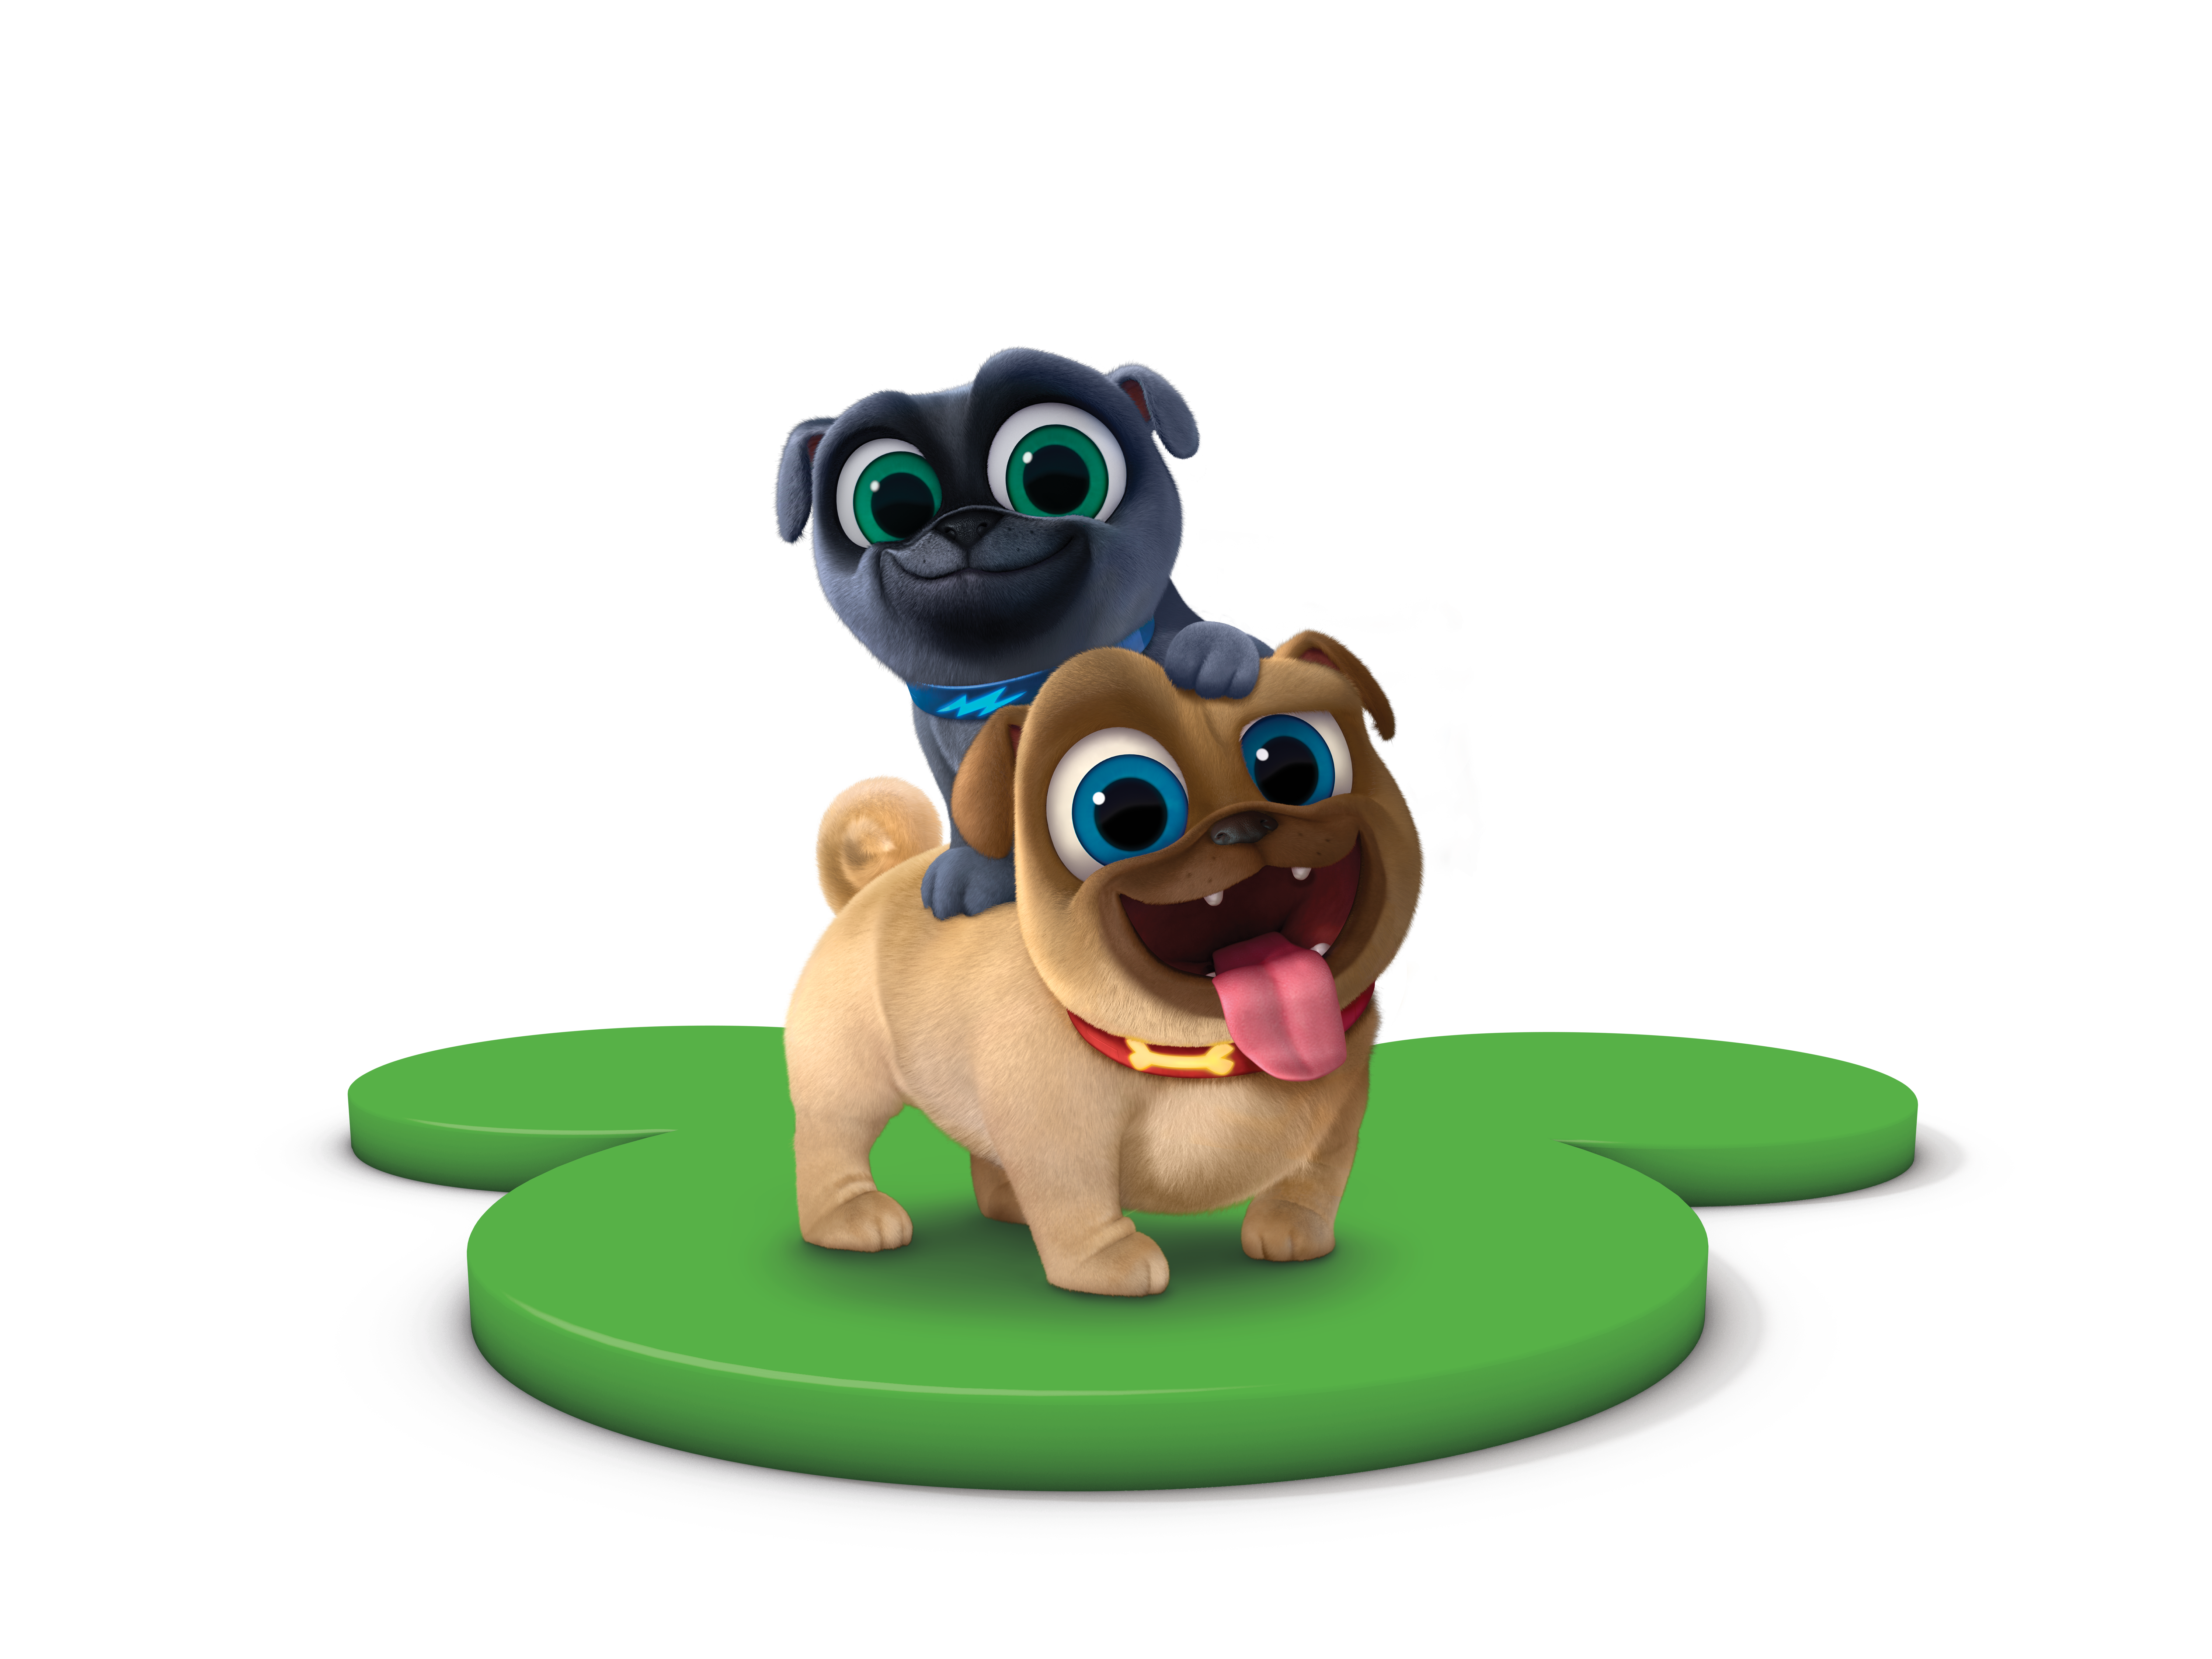 Puppy dog pals png. Humor pinterest